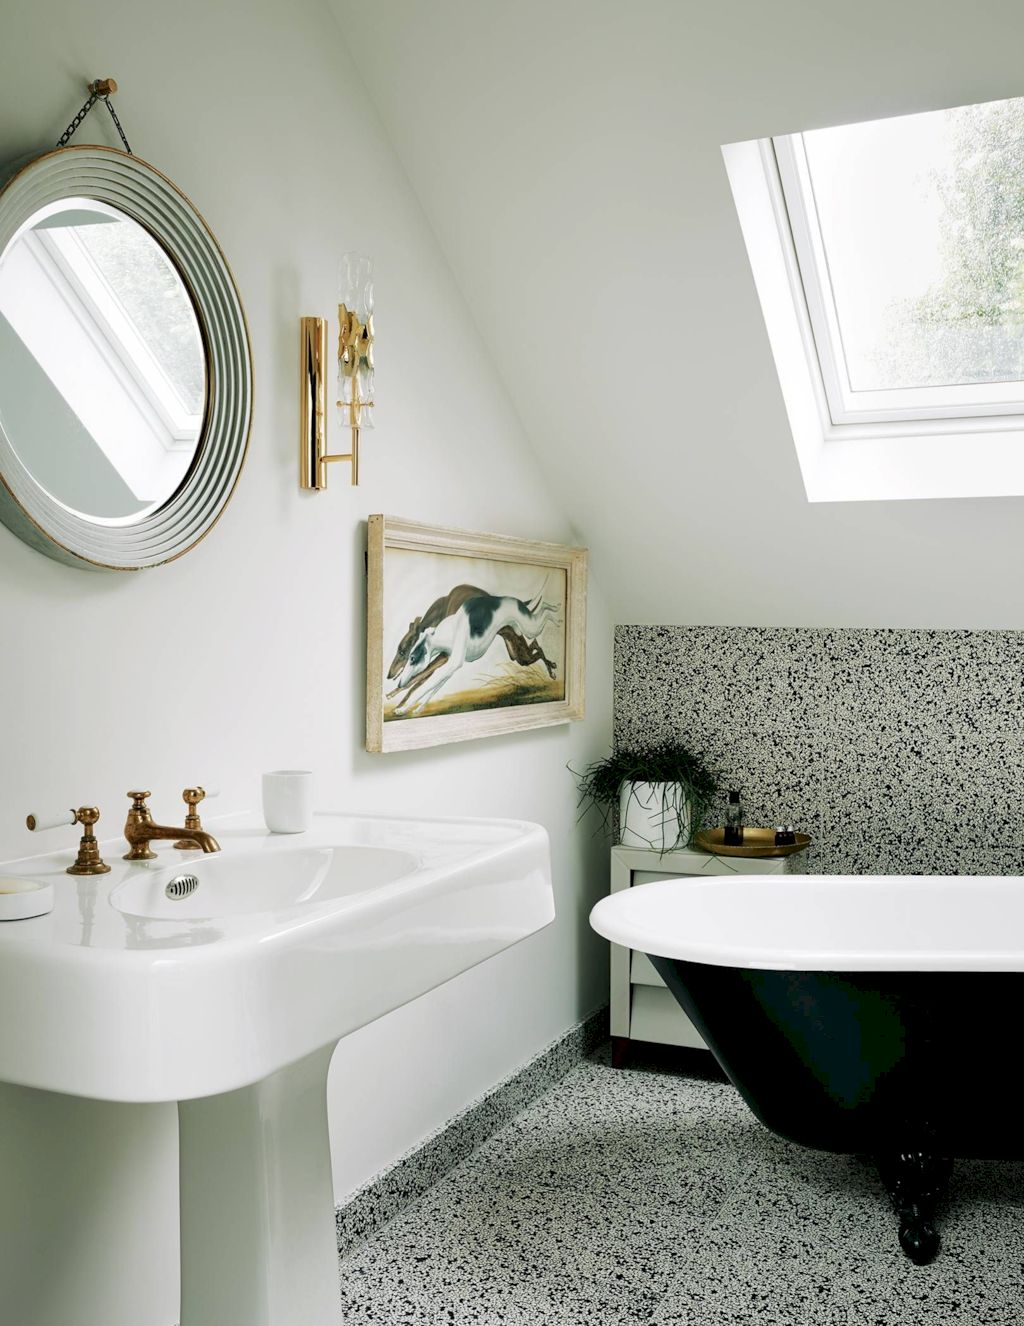 Creative bathroom updates mixing modern trend with simple 60s terrazzo style giving a brilliant contemporary balance Image 9